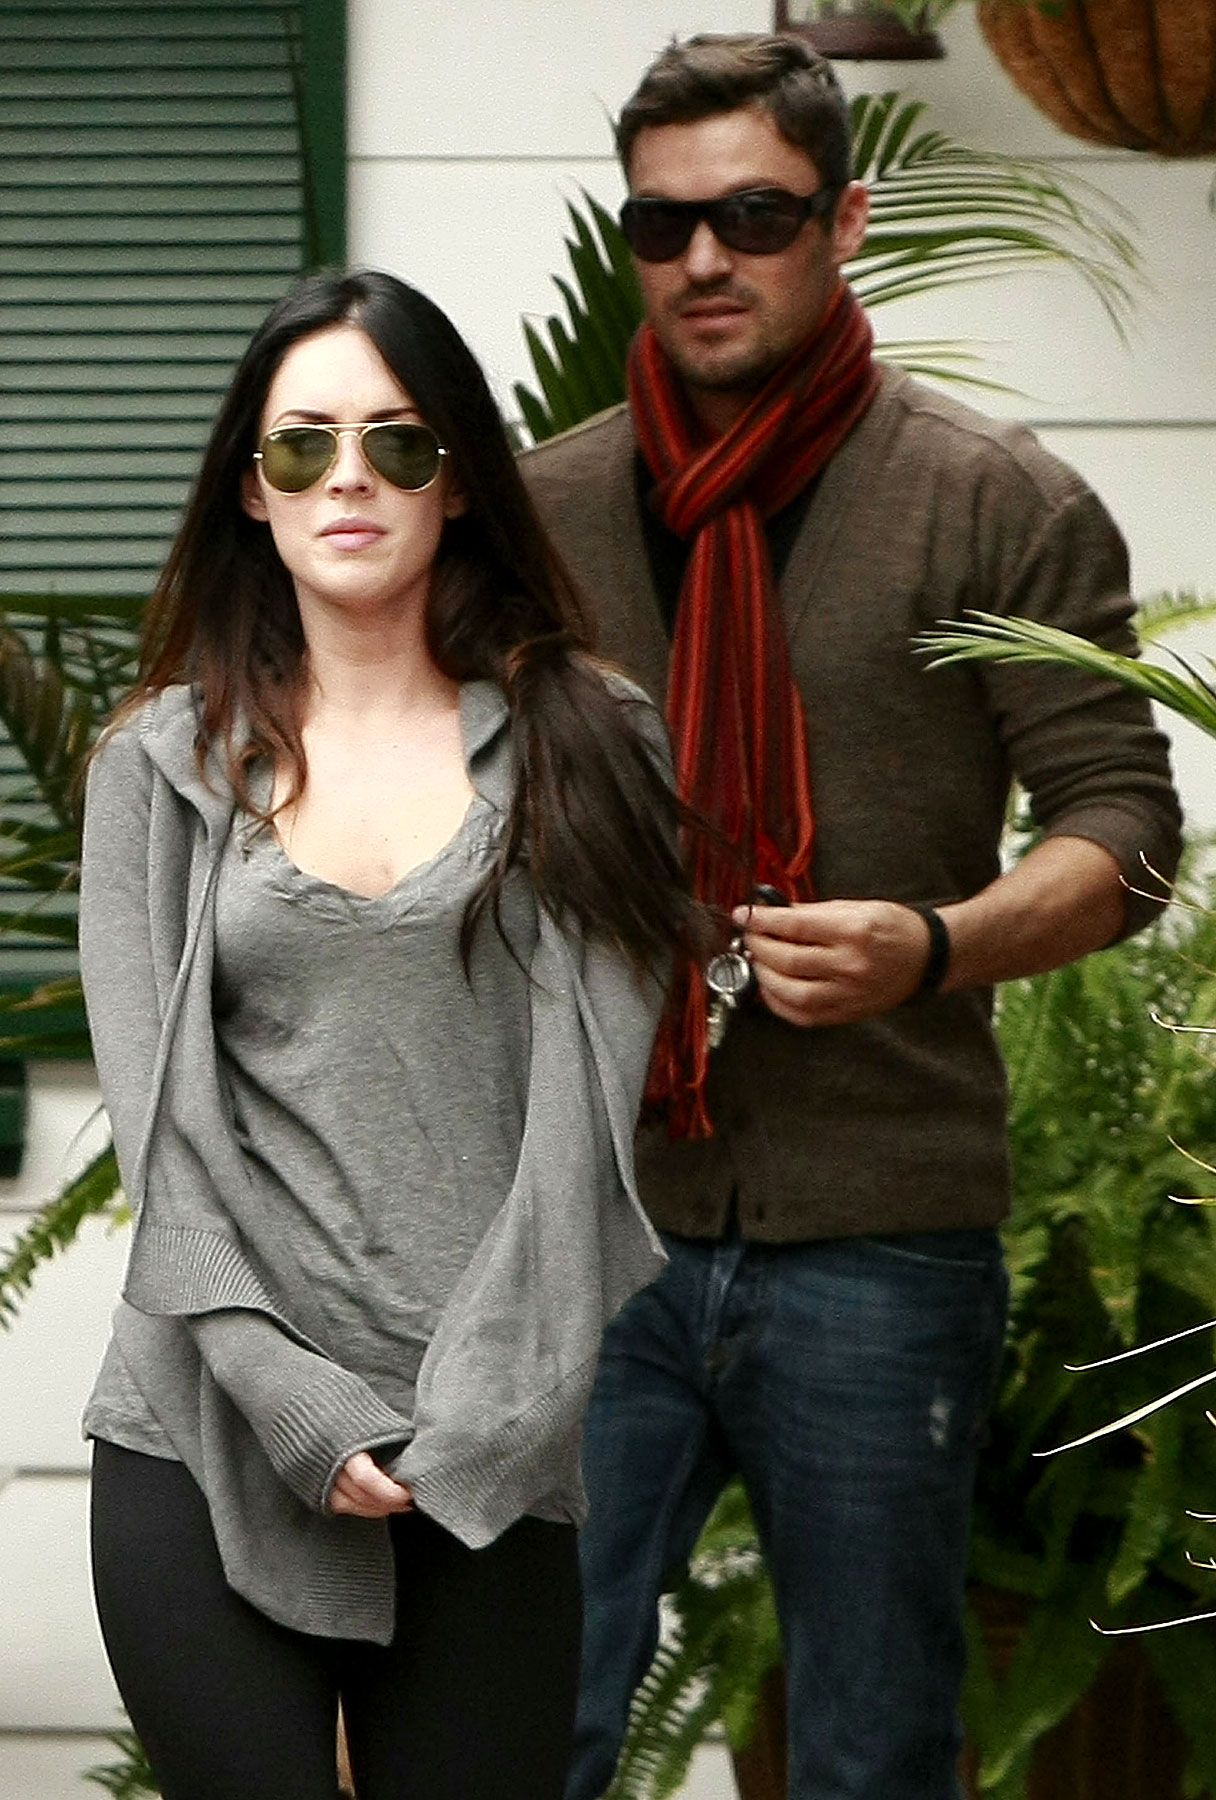 Megan Fox and Brian Austin Green Were Burglarized, Too